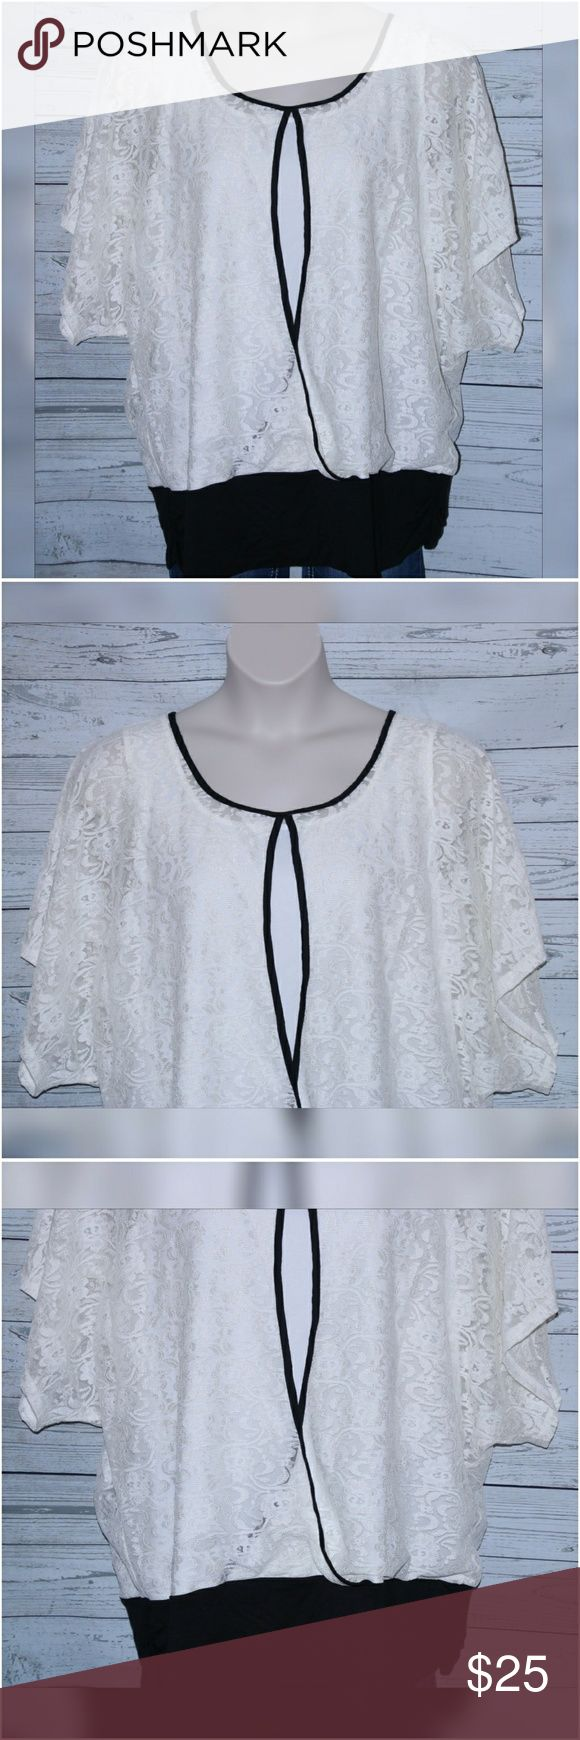 """NWOT Maurices Women's Plus Size 3 3X Lace Top NWOT Maurices Women's Plus Size 3 3X Cream Black Keyhole Lace Cami Lined Top Blouse  All measurements are approximate and  taken unstretched and laying flat.   Chest: 50""""  Length: 31""""  Sleeve: 14.5""""   If you have any questions, please don't  hesitate to send me a message.  Please feel free to check out the other  items listed in my store.   Note to Buyers:  **Colors may vary slightly from photos of item, due to lighting, camera, editing…"""